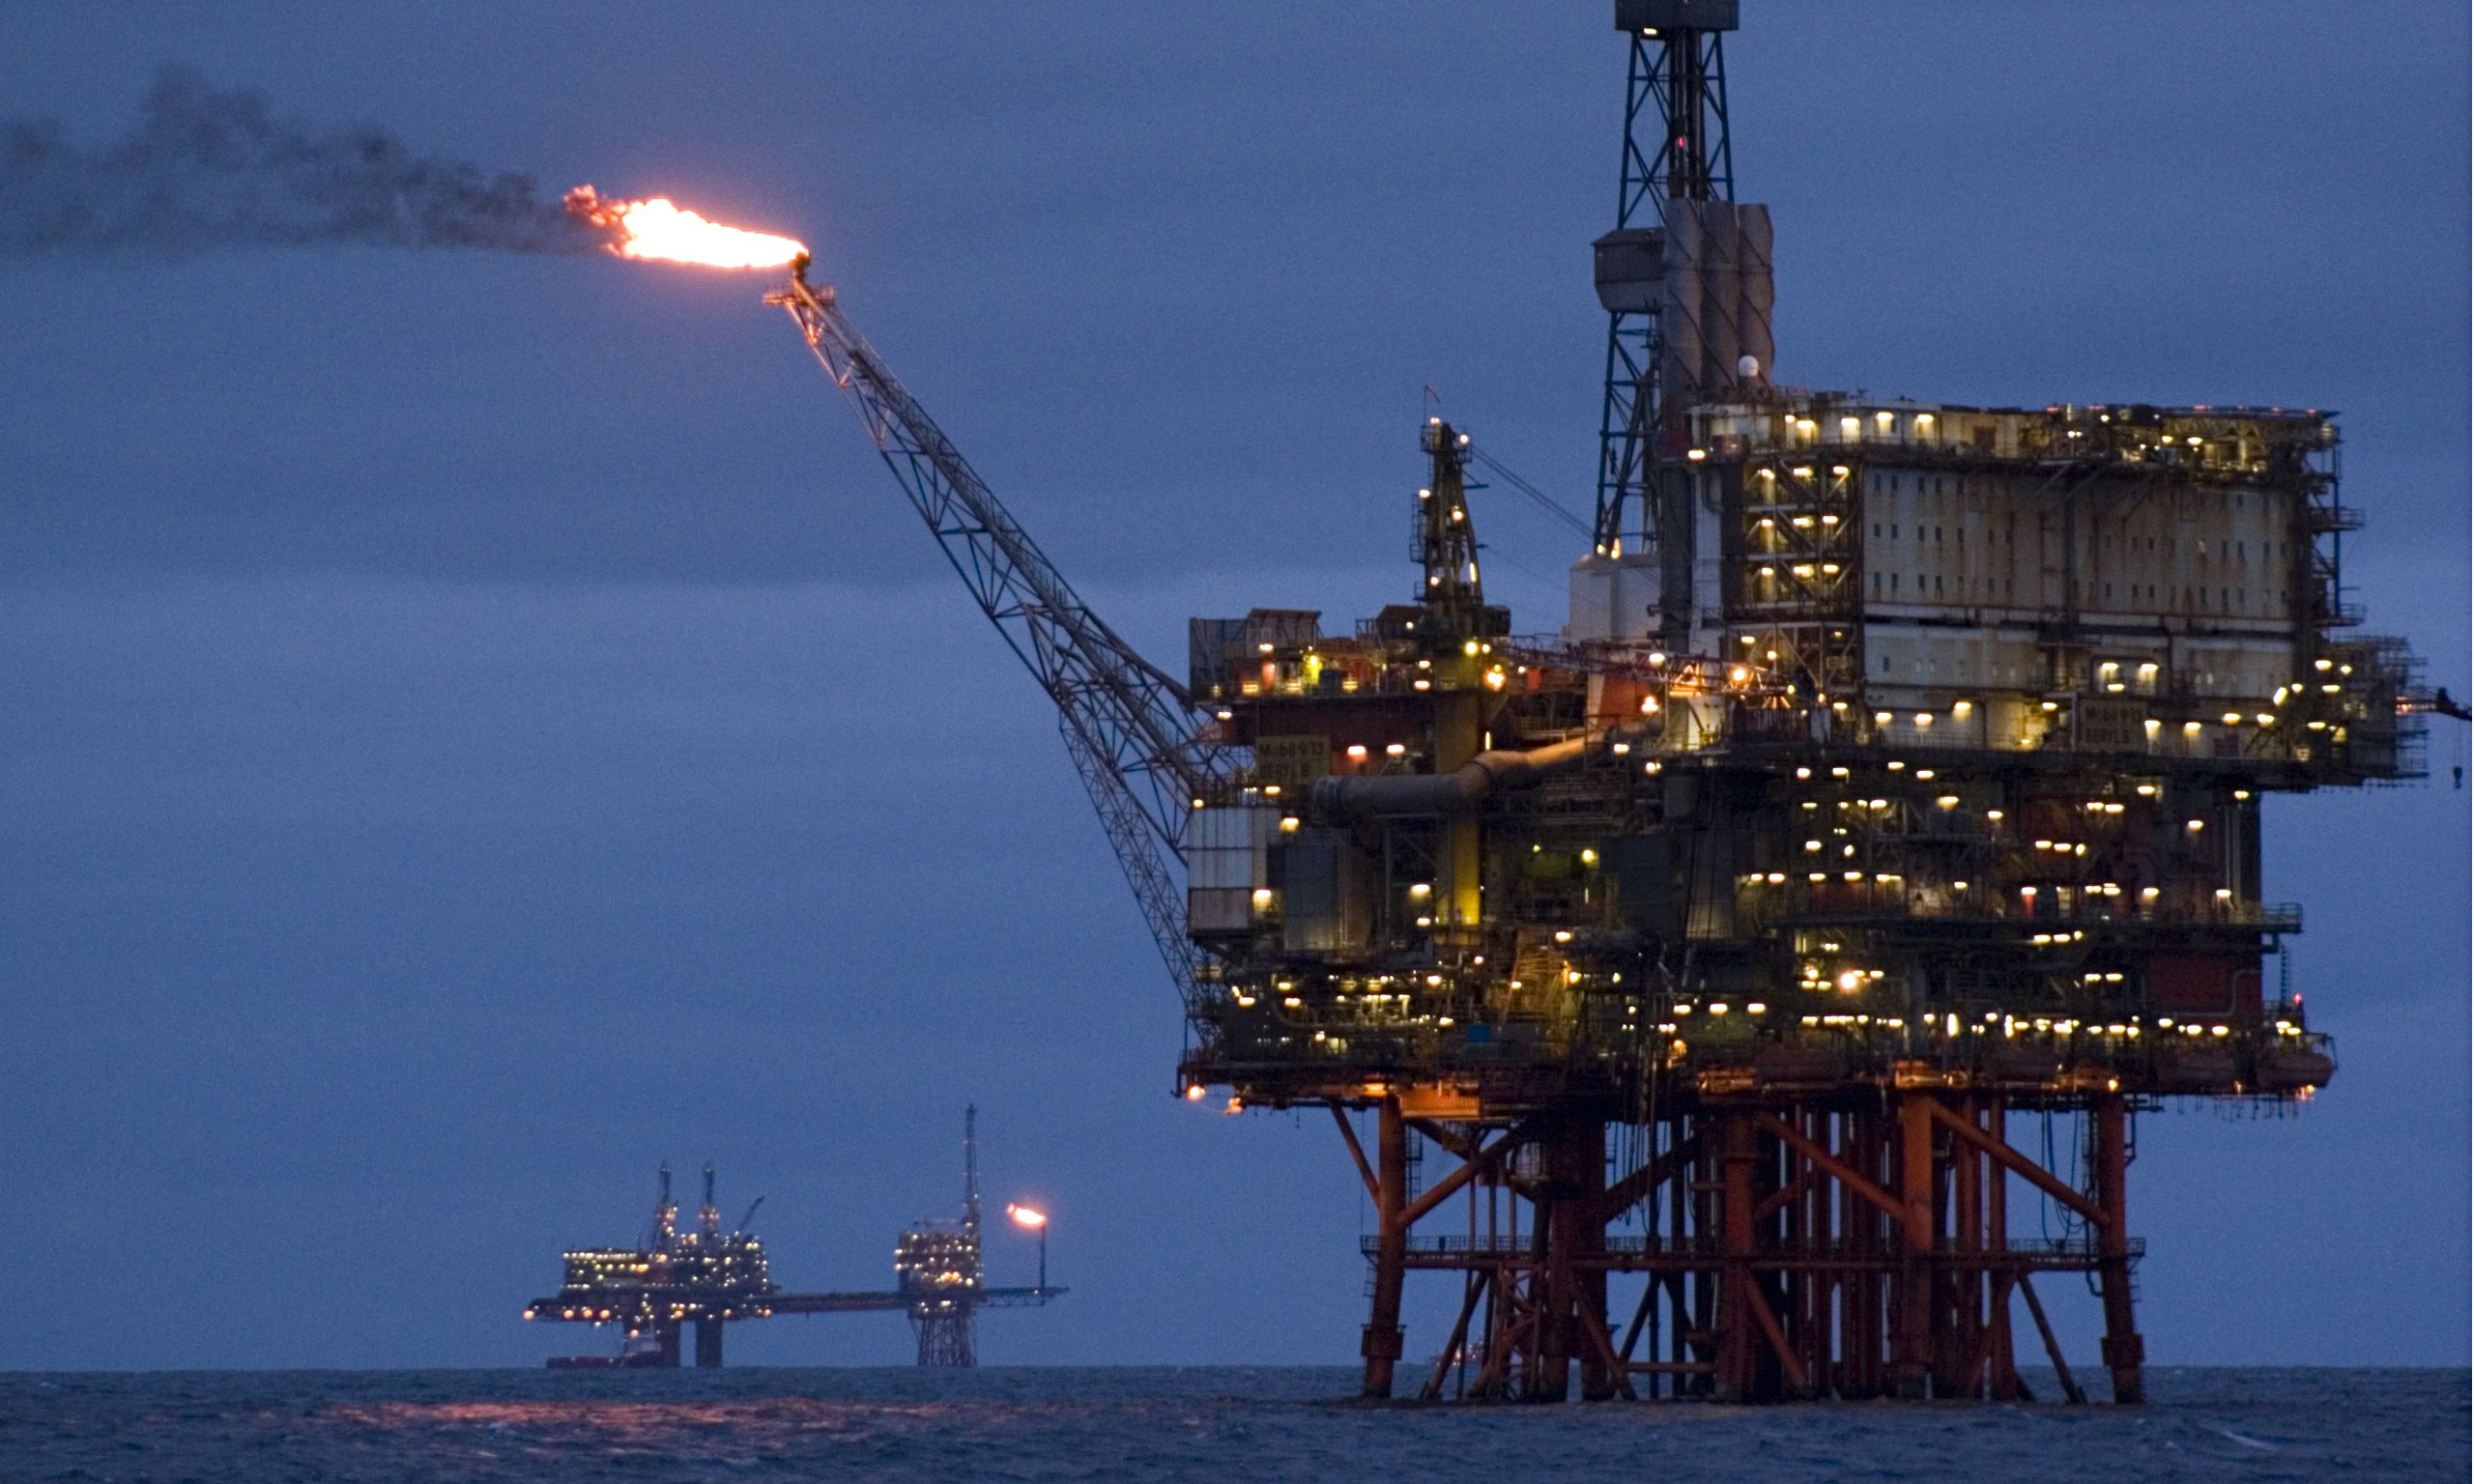 2560x1536 HQ Oil Platform Wallpapers | File 1184.39Kb